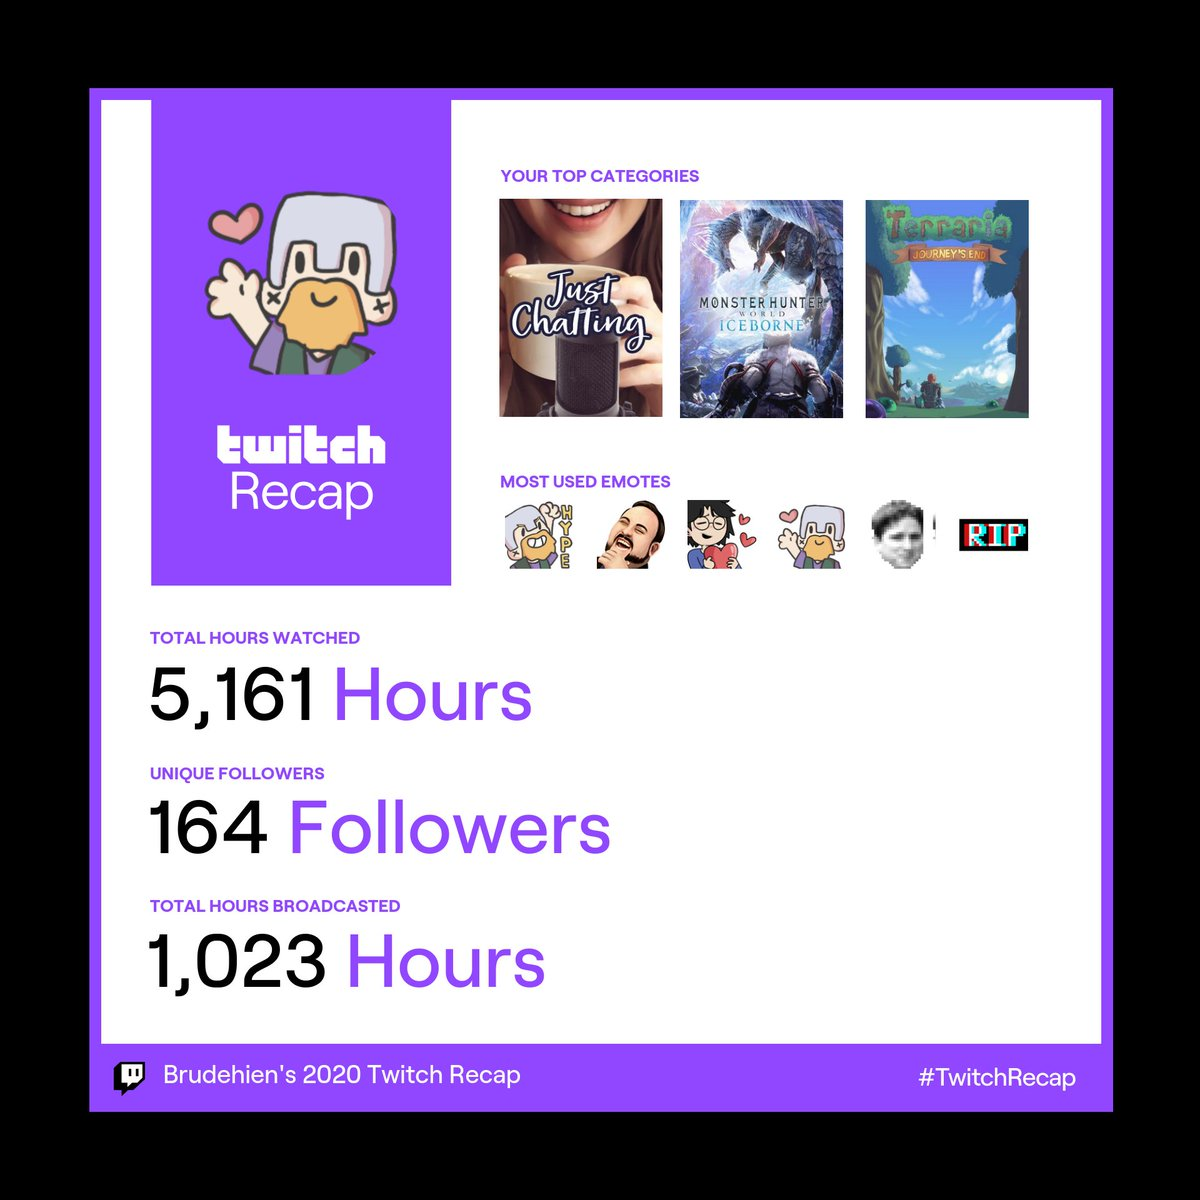 @Twitch One hell of a year! So many nerf rounds and cat treats dishes out by chat!  So much love to folks who tune in and make streaming a blast 🥰  #TwitchRecap